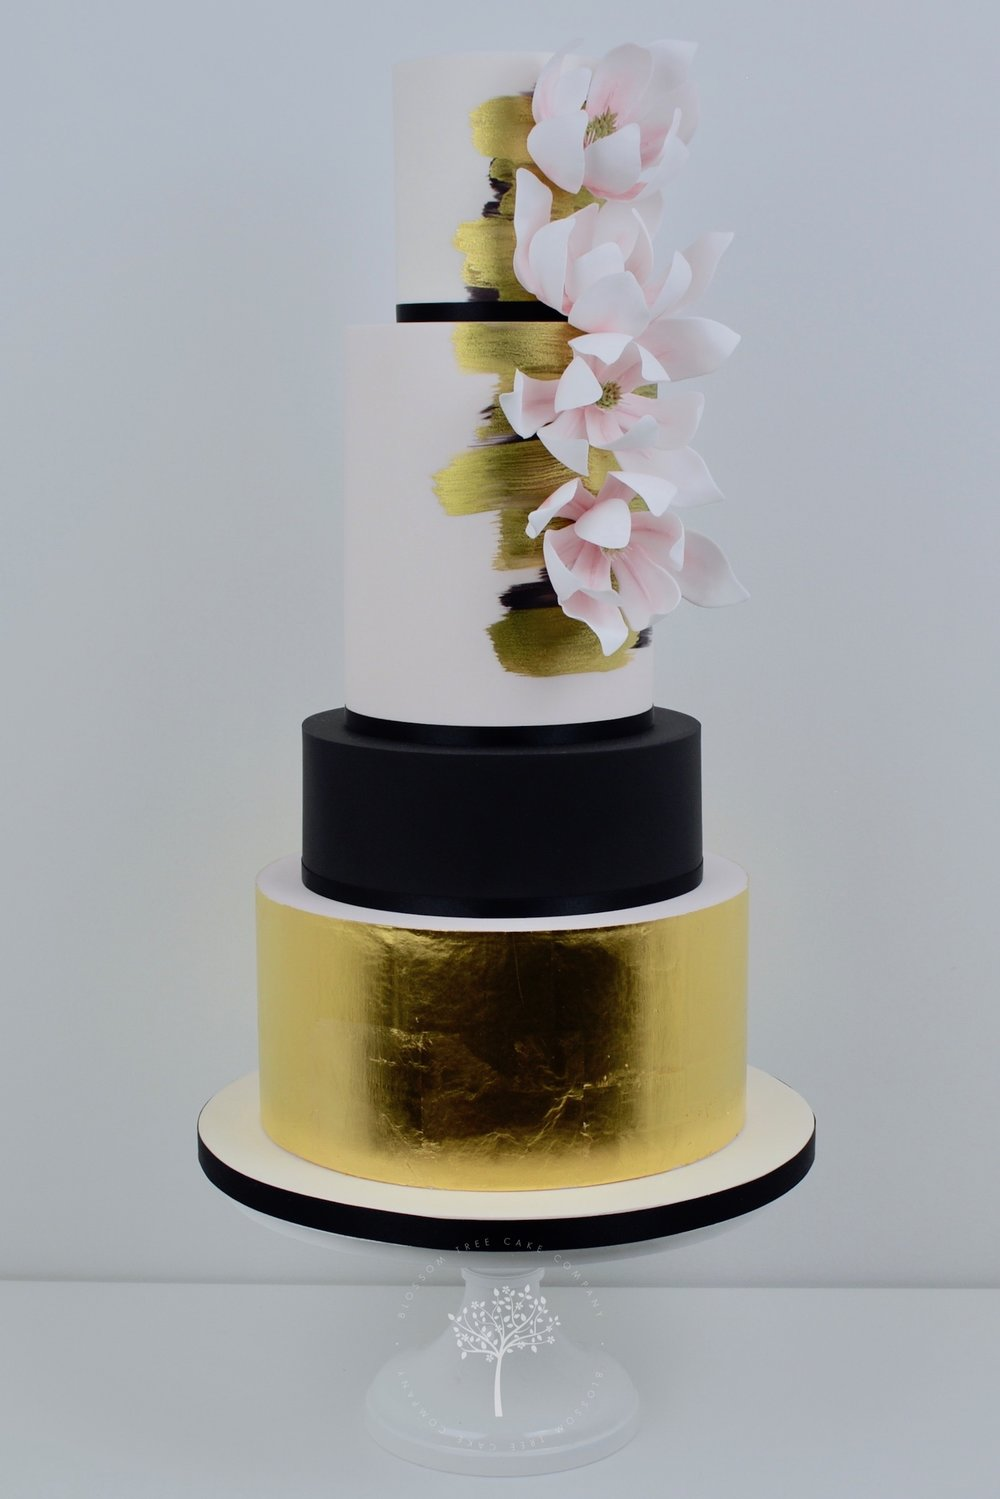 Gold Magnolias wedding cake by Blossom Tree Cake Company Harrogate North Yorkshire.jpg